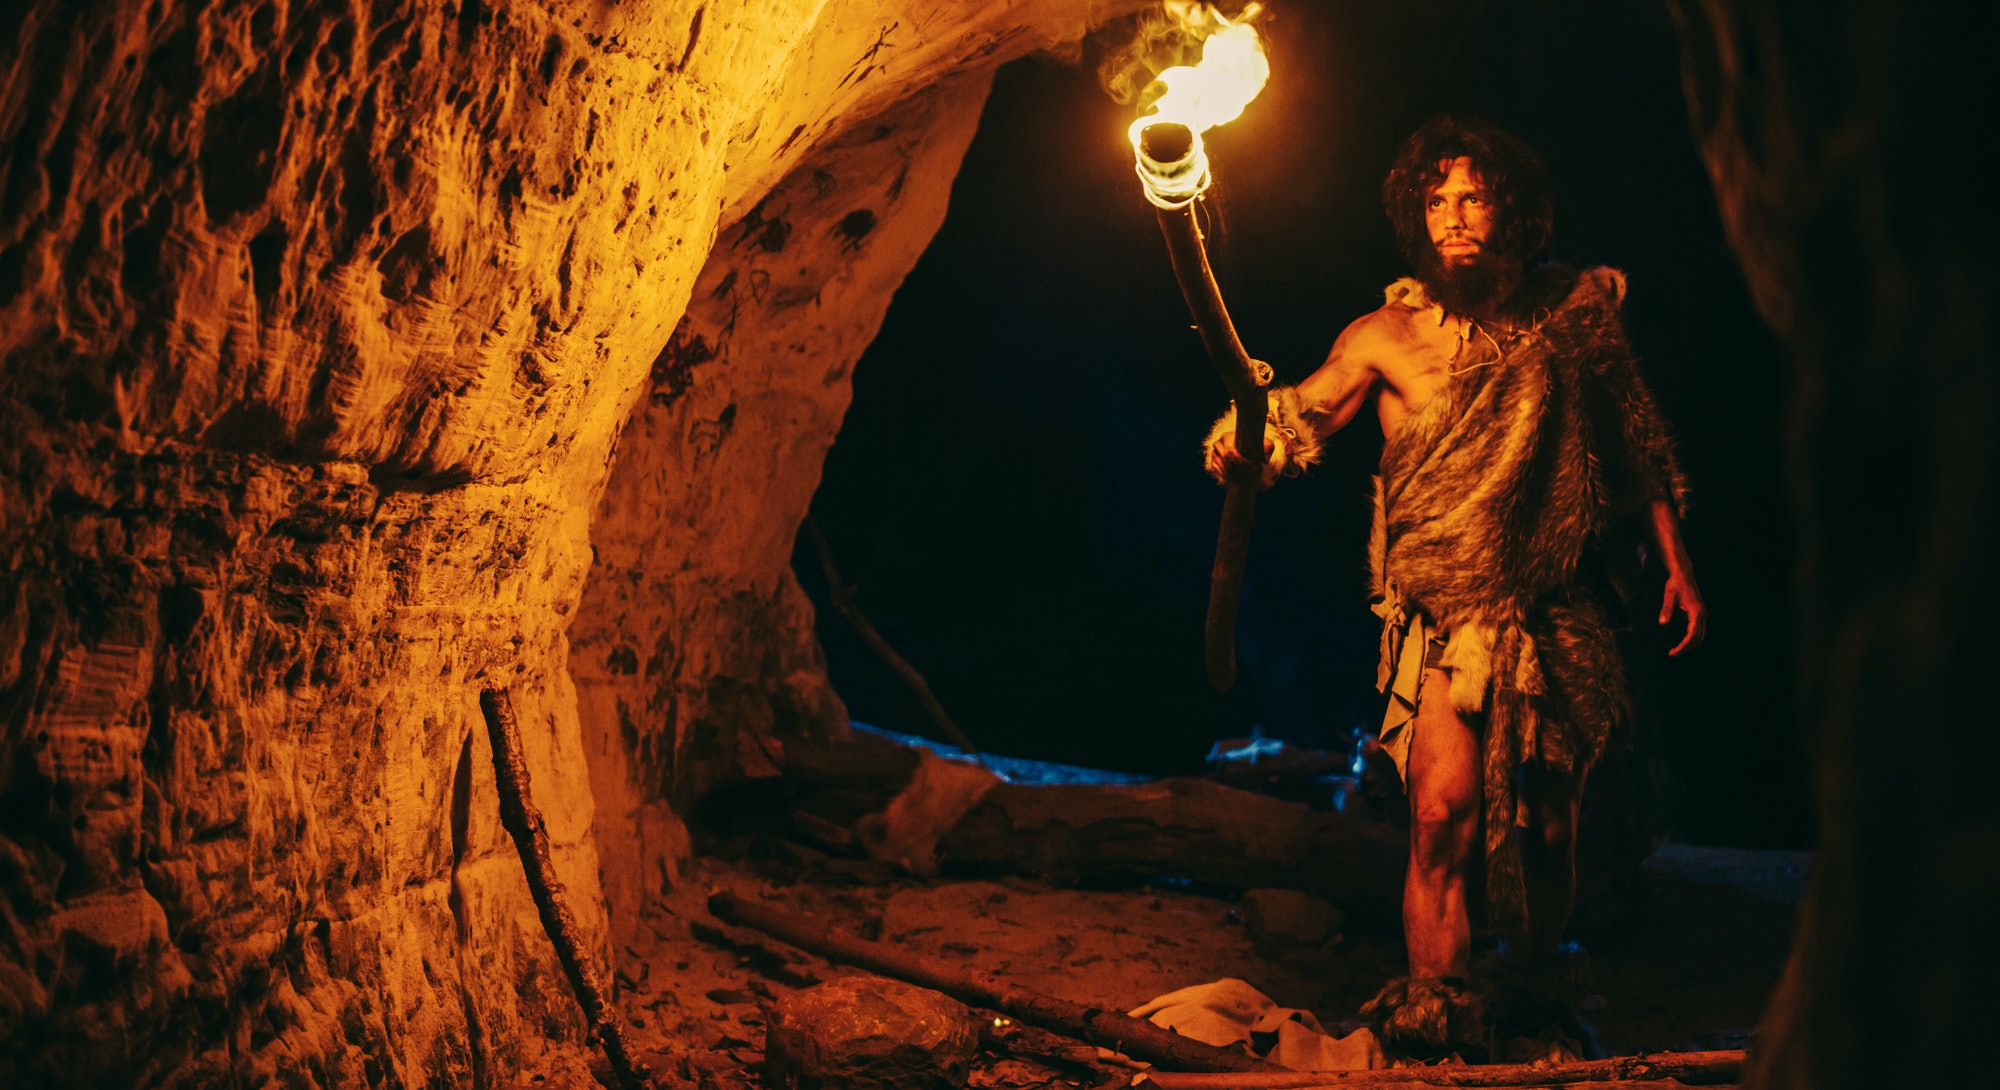 Primeval Caveman Wearing Animal Skin Exploring Cave At Night, Holding Torch with Fire Looking at Dra...